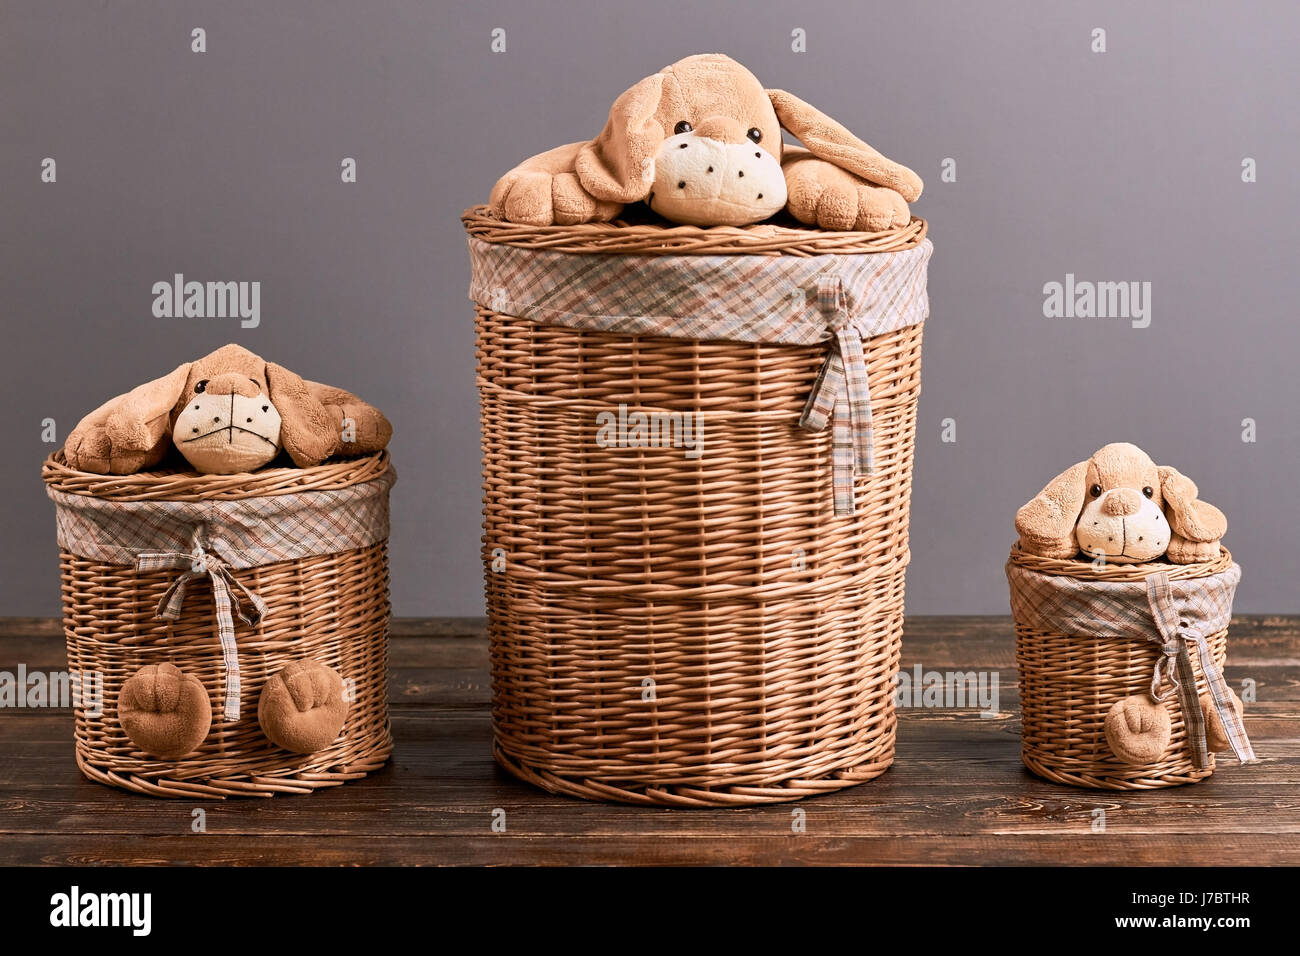 Laundry baskets with soft toys baskets on wooden surface cute household items